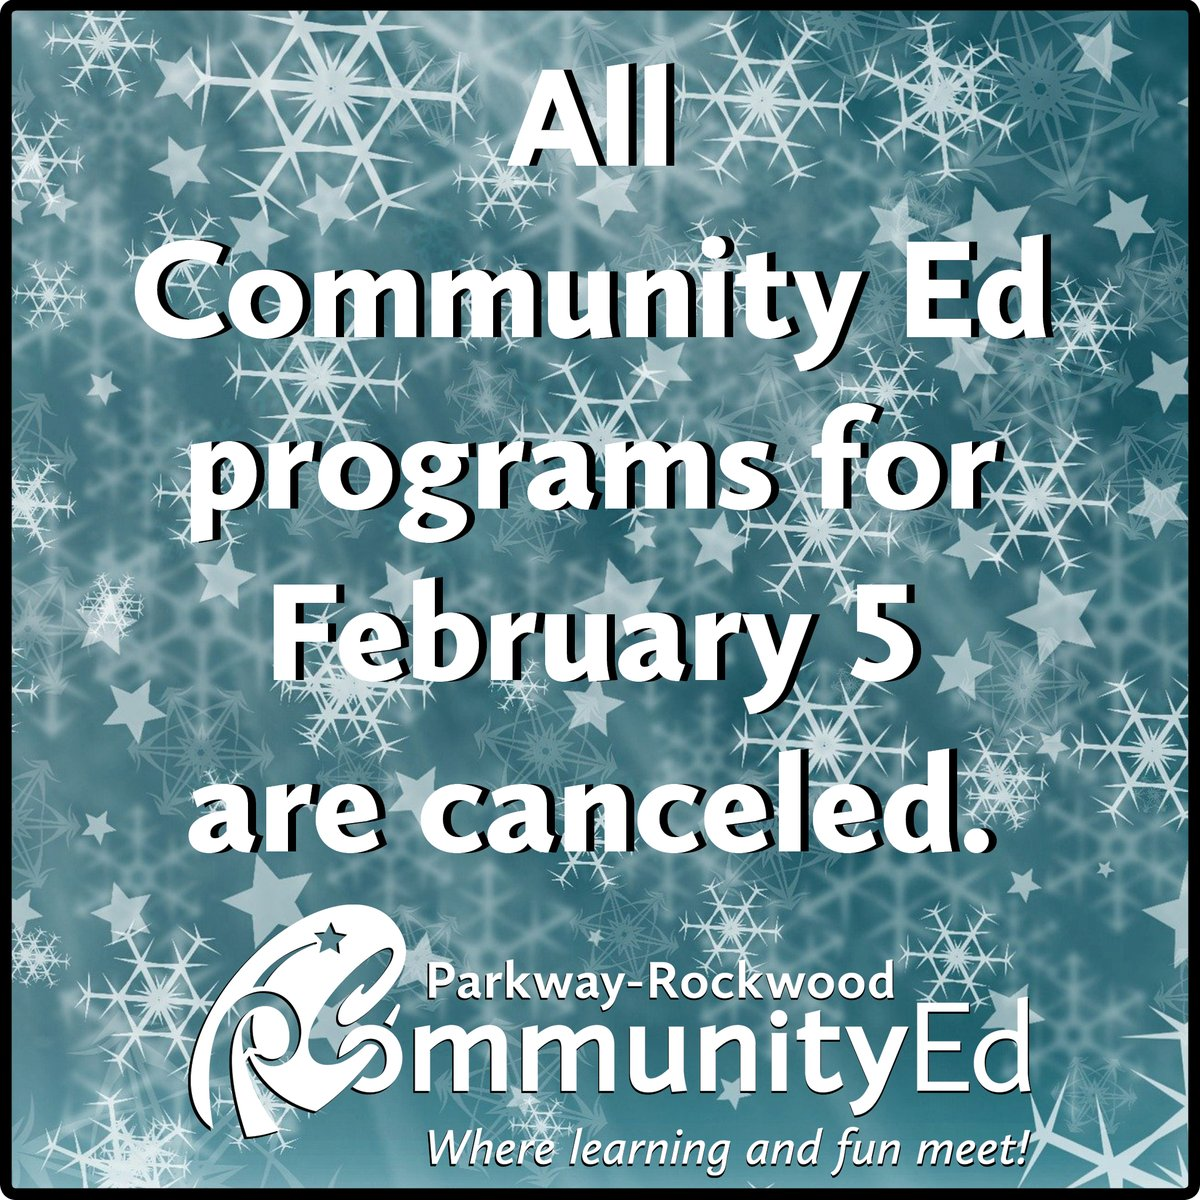 Due to severe weather, all afternoon and evening Community Ed programs are canceled. Please stay safe.